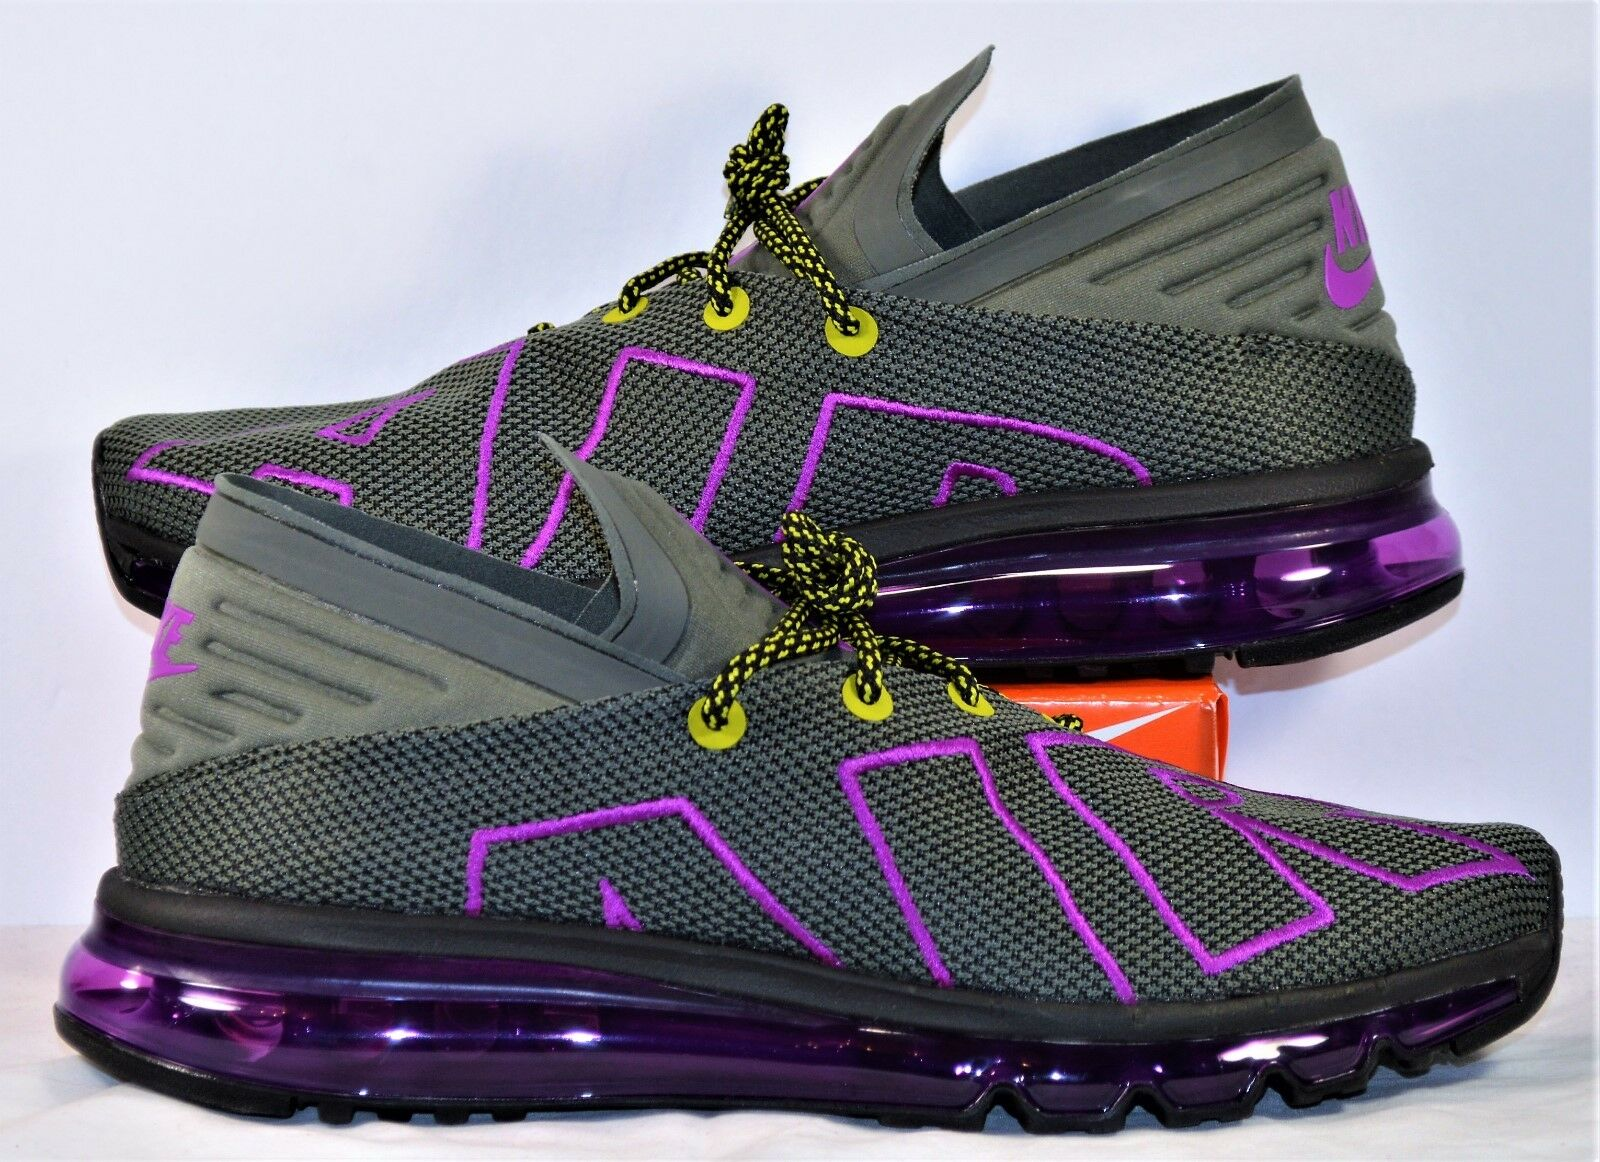 Nike Air Max Flair Up Tempo Gray Purple Volt Running Shoes Sz 11 NEW AH9711 001 Wild casual shoes